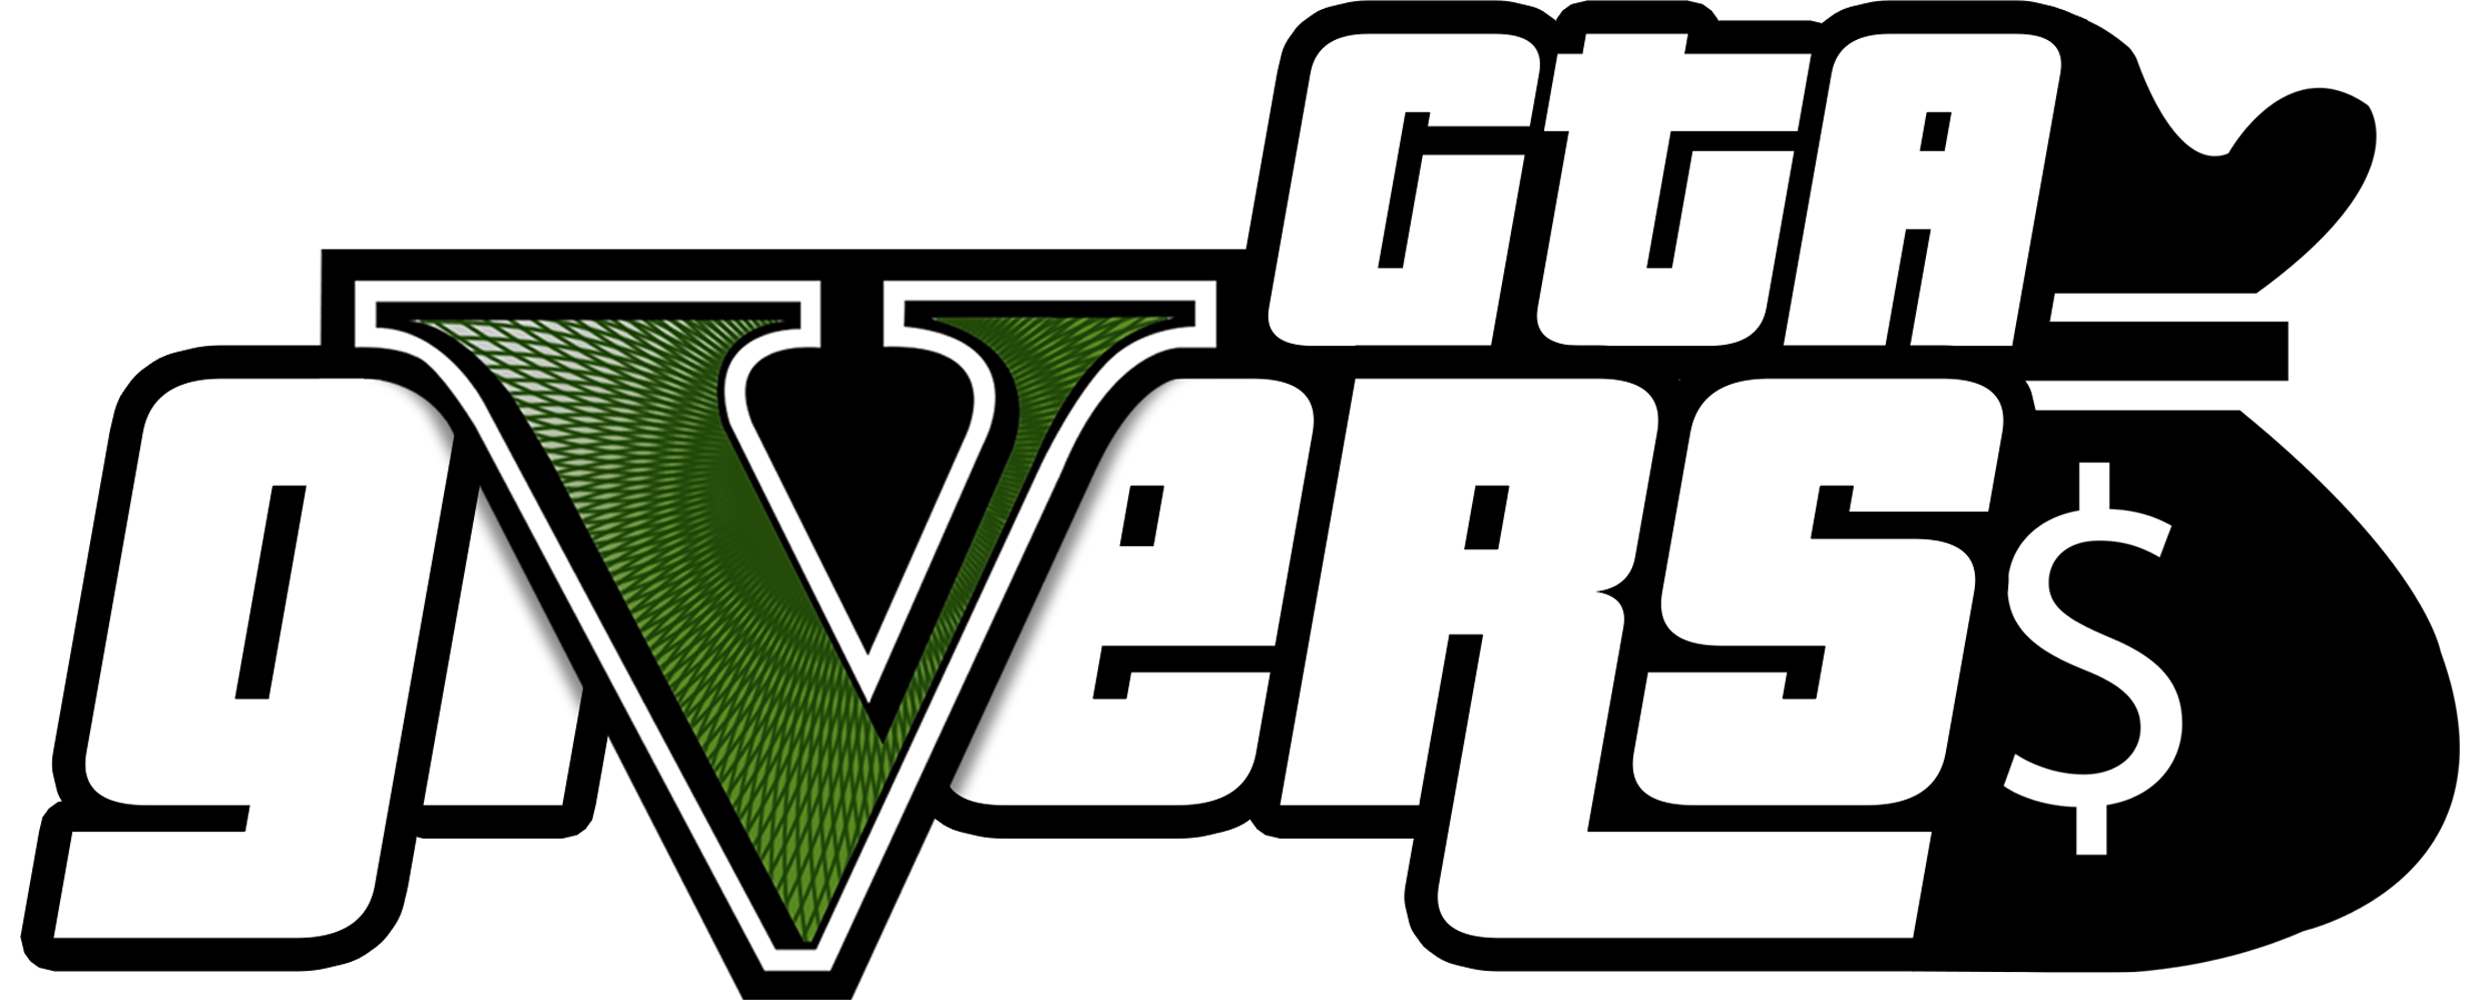 Gtagivers the place to. Youtube clipart gta 5